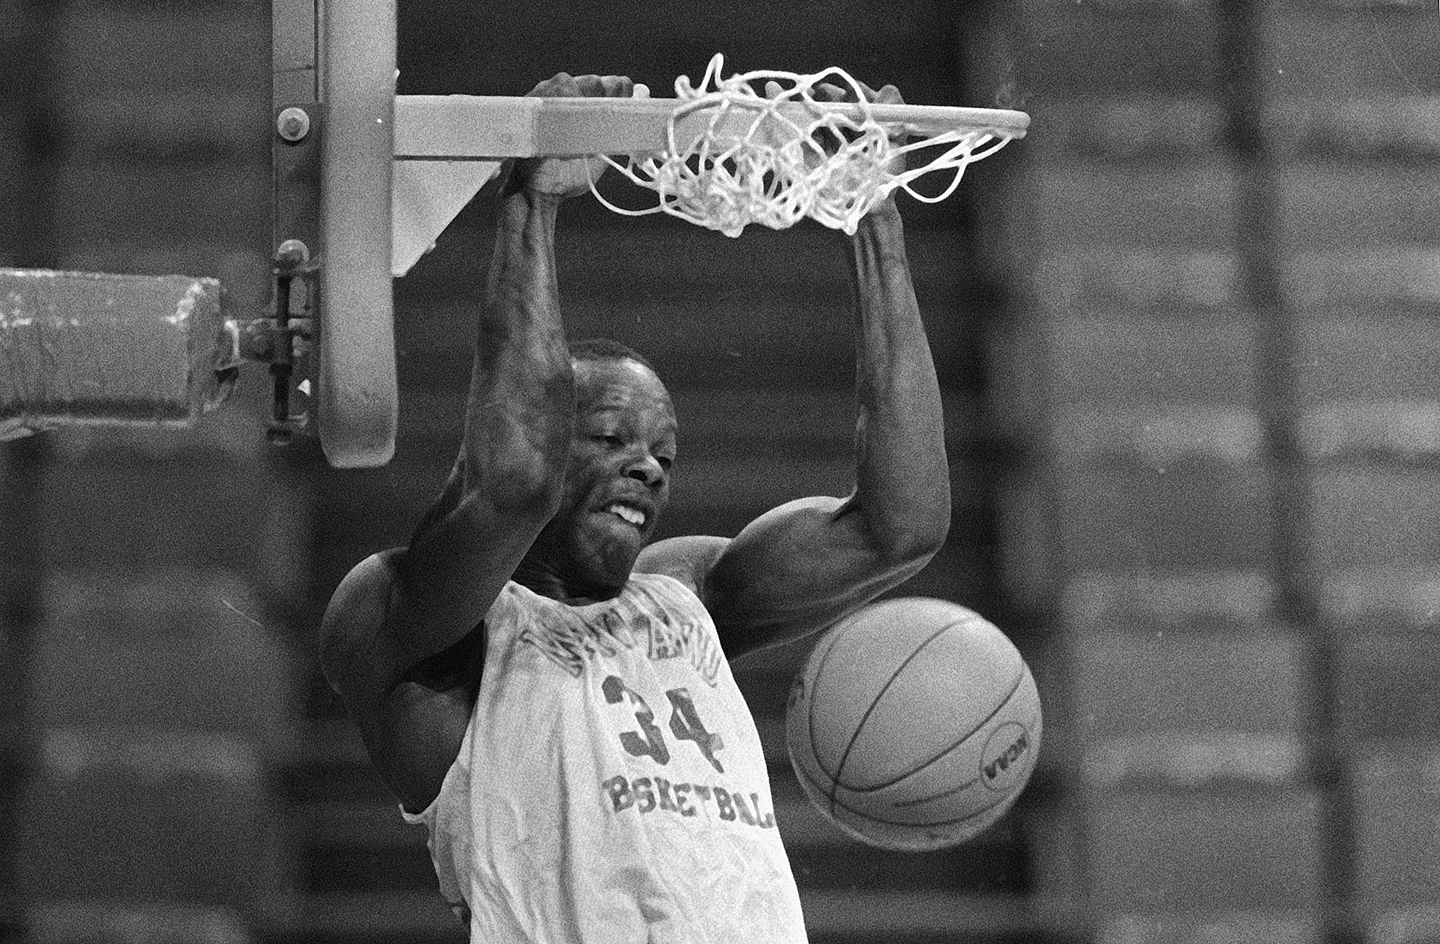 University of Maryland's Len Bias slams home a dunk at the Omni in Atlanta, Ga., March 7, 1985 as the Terrapins prepare for the Atlantic Coast Conference Tournament game against Duke.